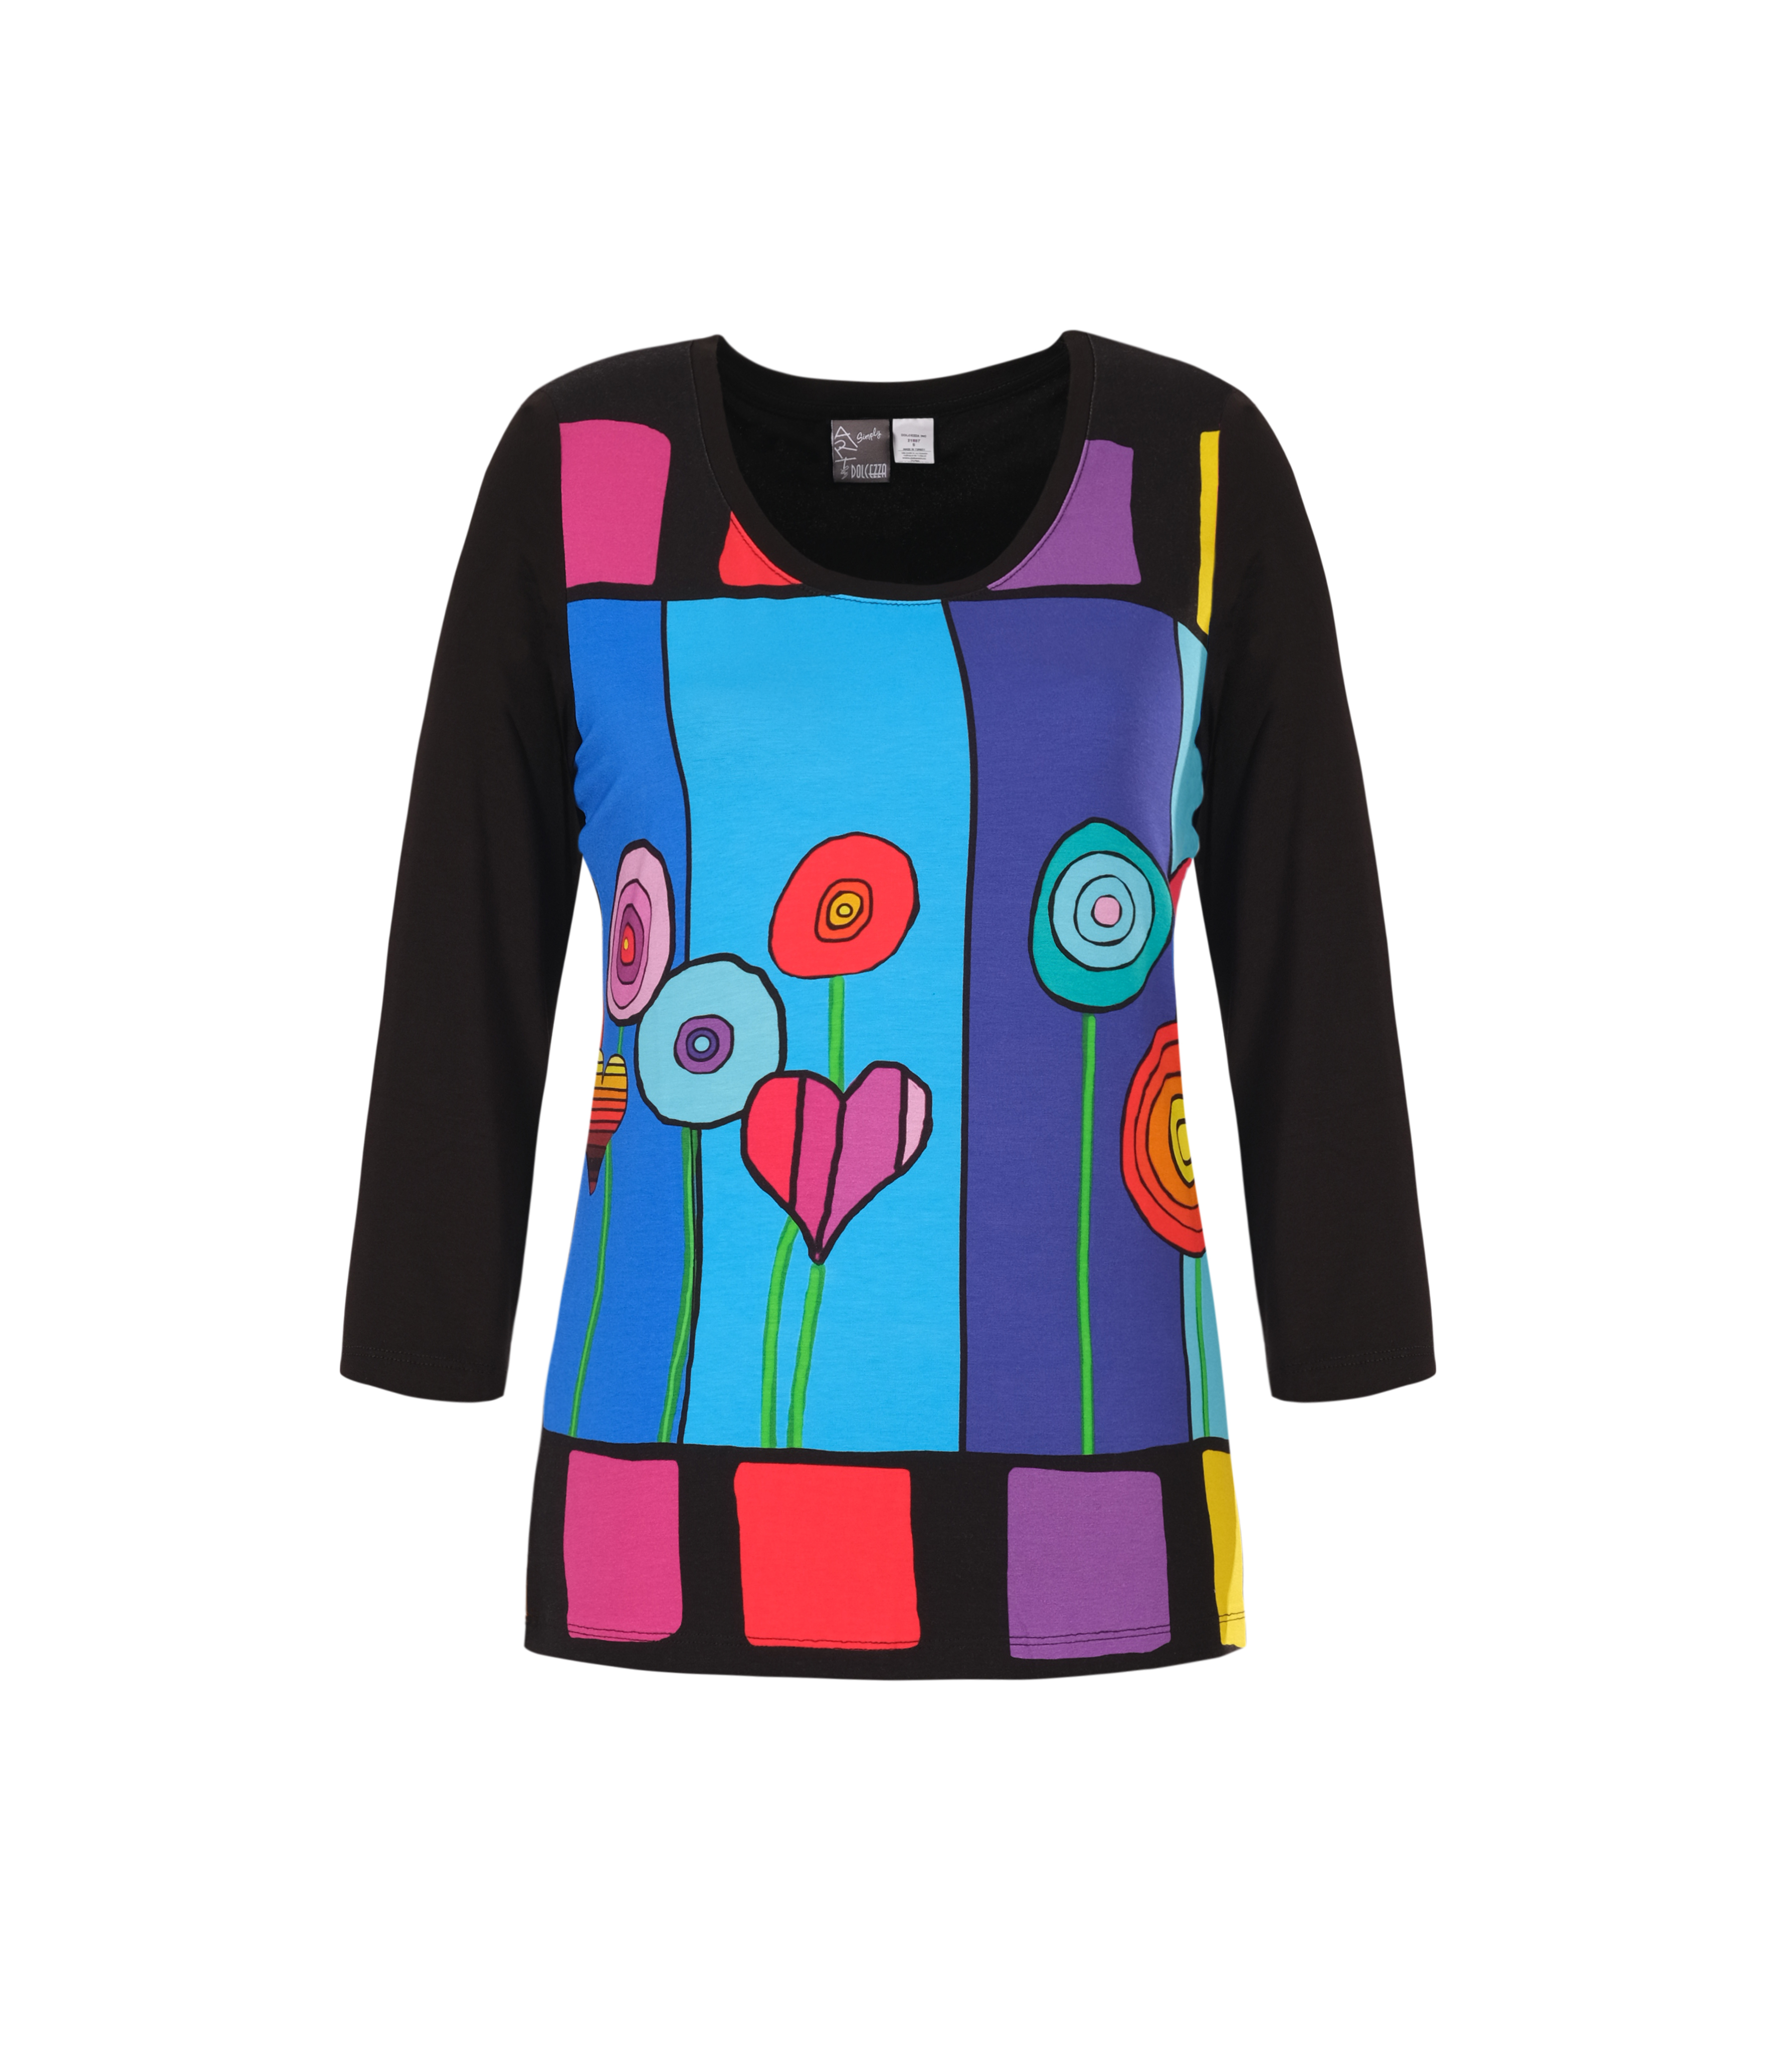 Simply Art Dolcezza: Lollipops Of Happiness Abstract Art Tunic Dolcezza_SimplyArt_21608